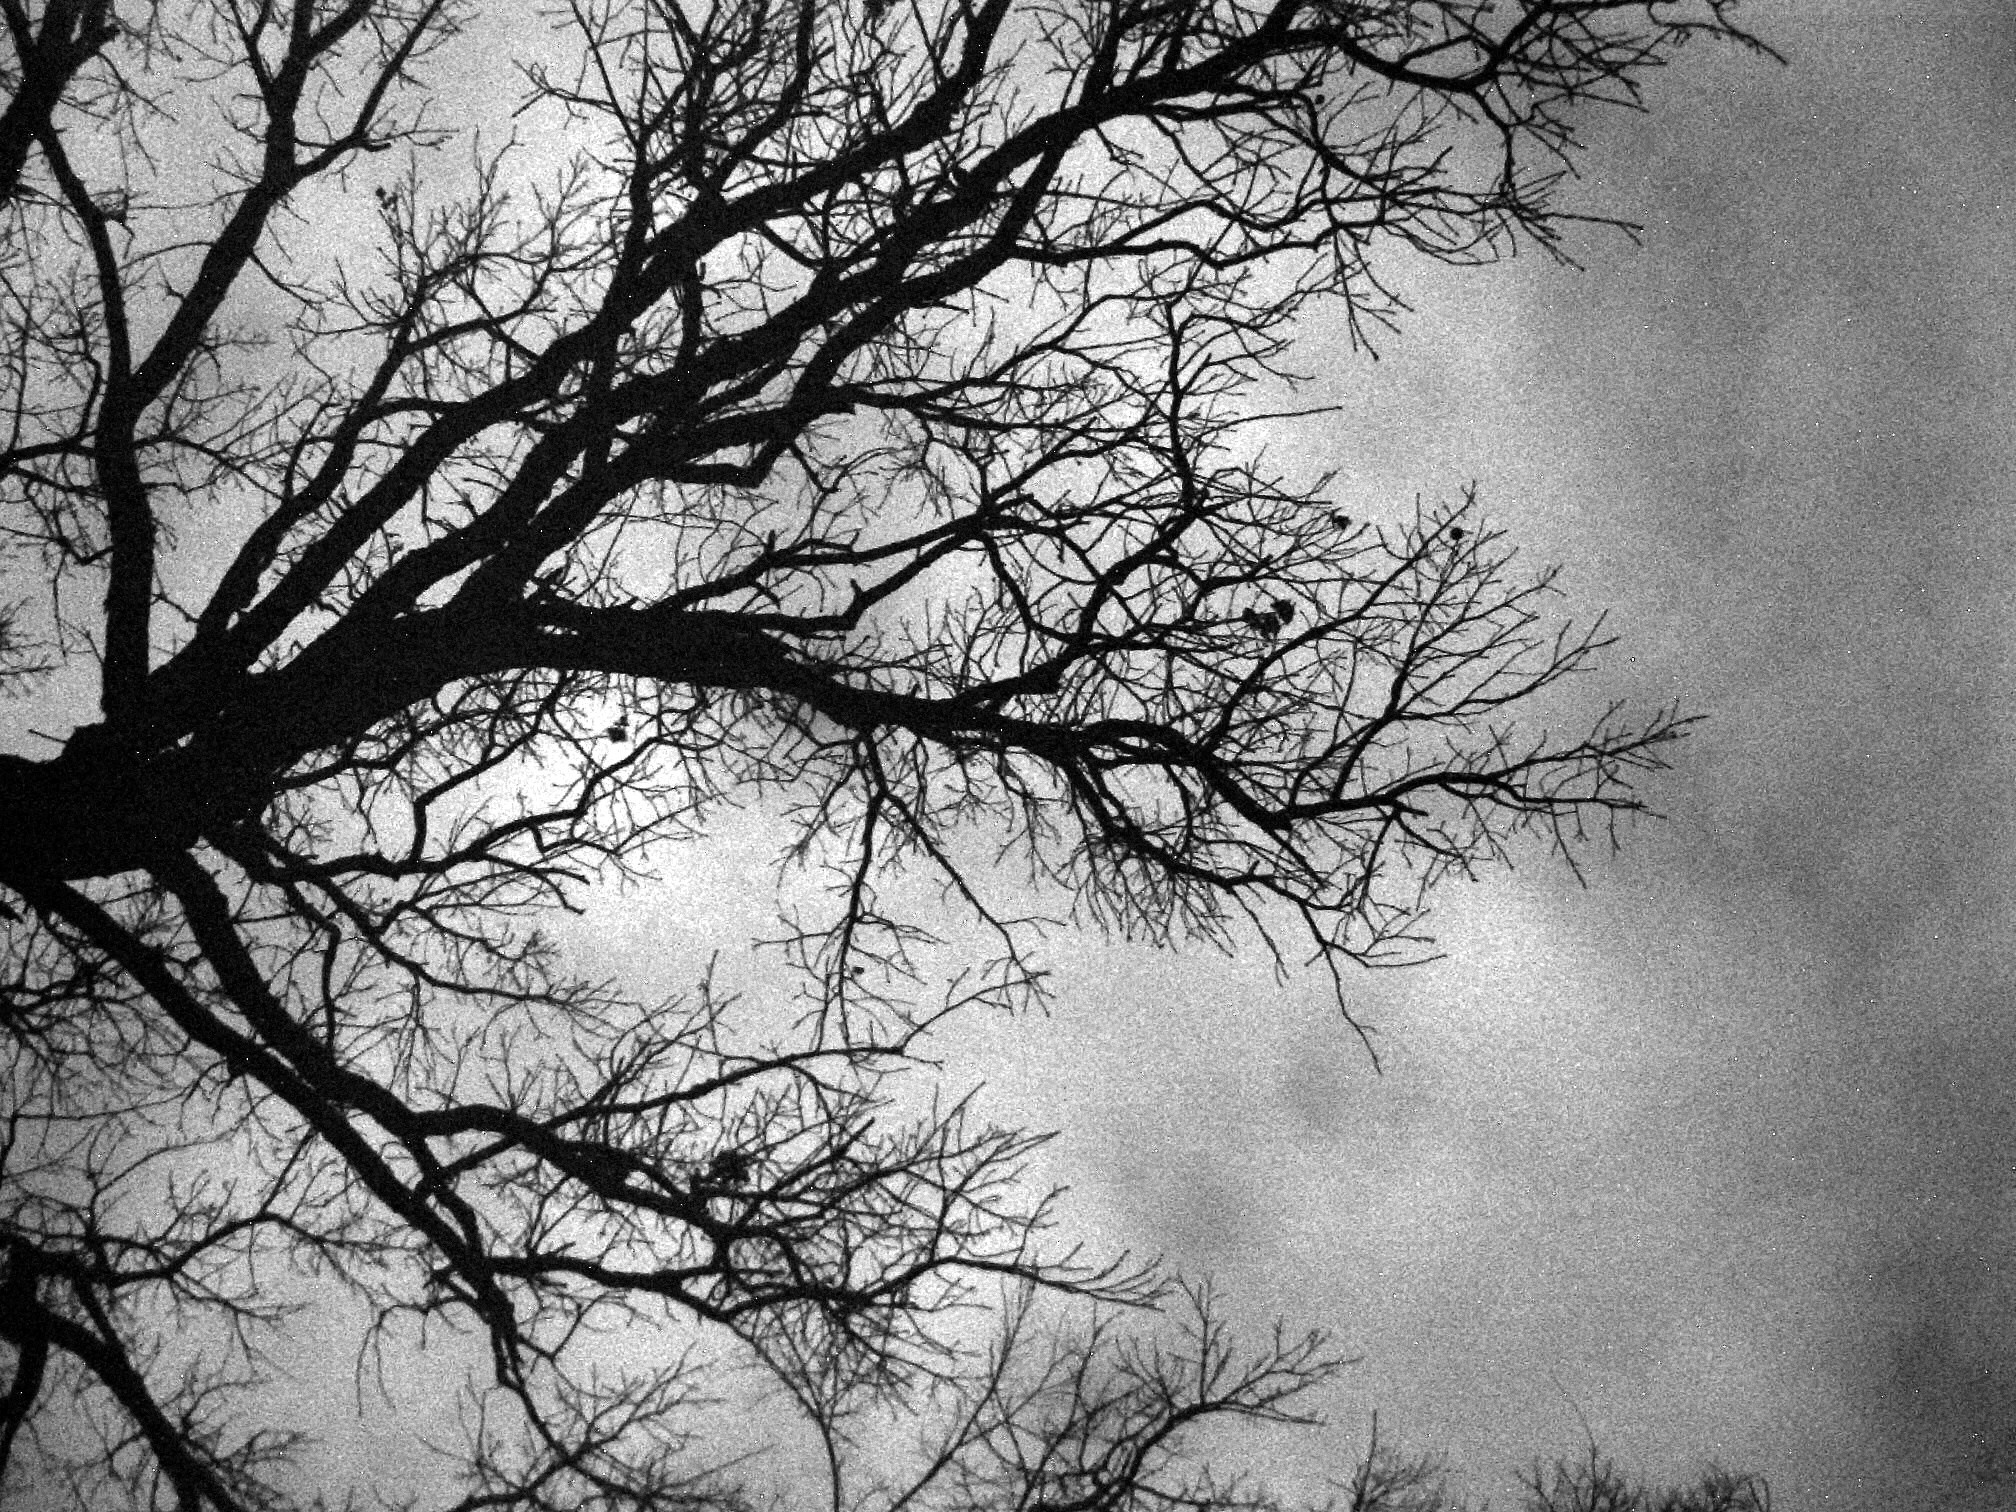 Black And White Images Of Trees 28 Free Hd Wallpaper .